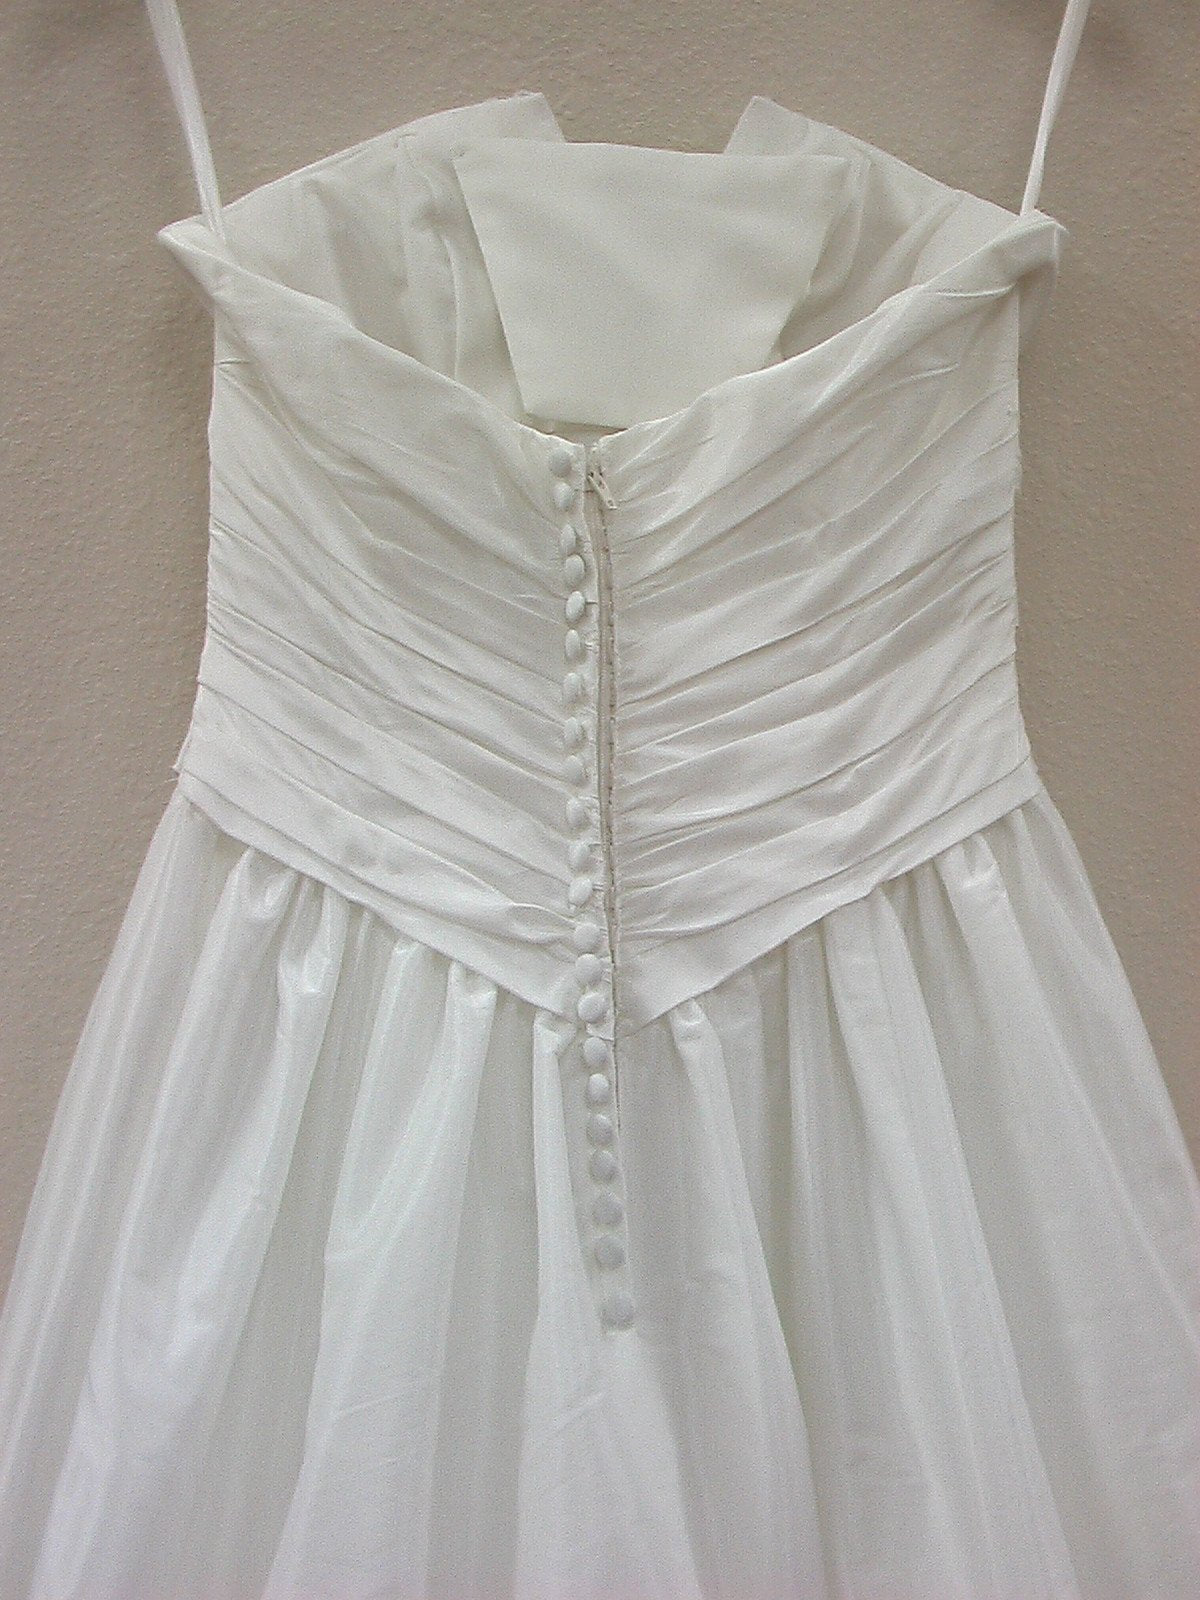 Jacquelin Exclusive 19843 Ivory/Silver size 6 In Stock Wedding Dress - Tom's Bridal